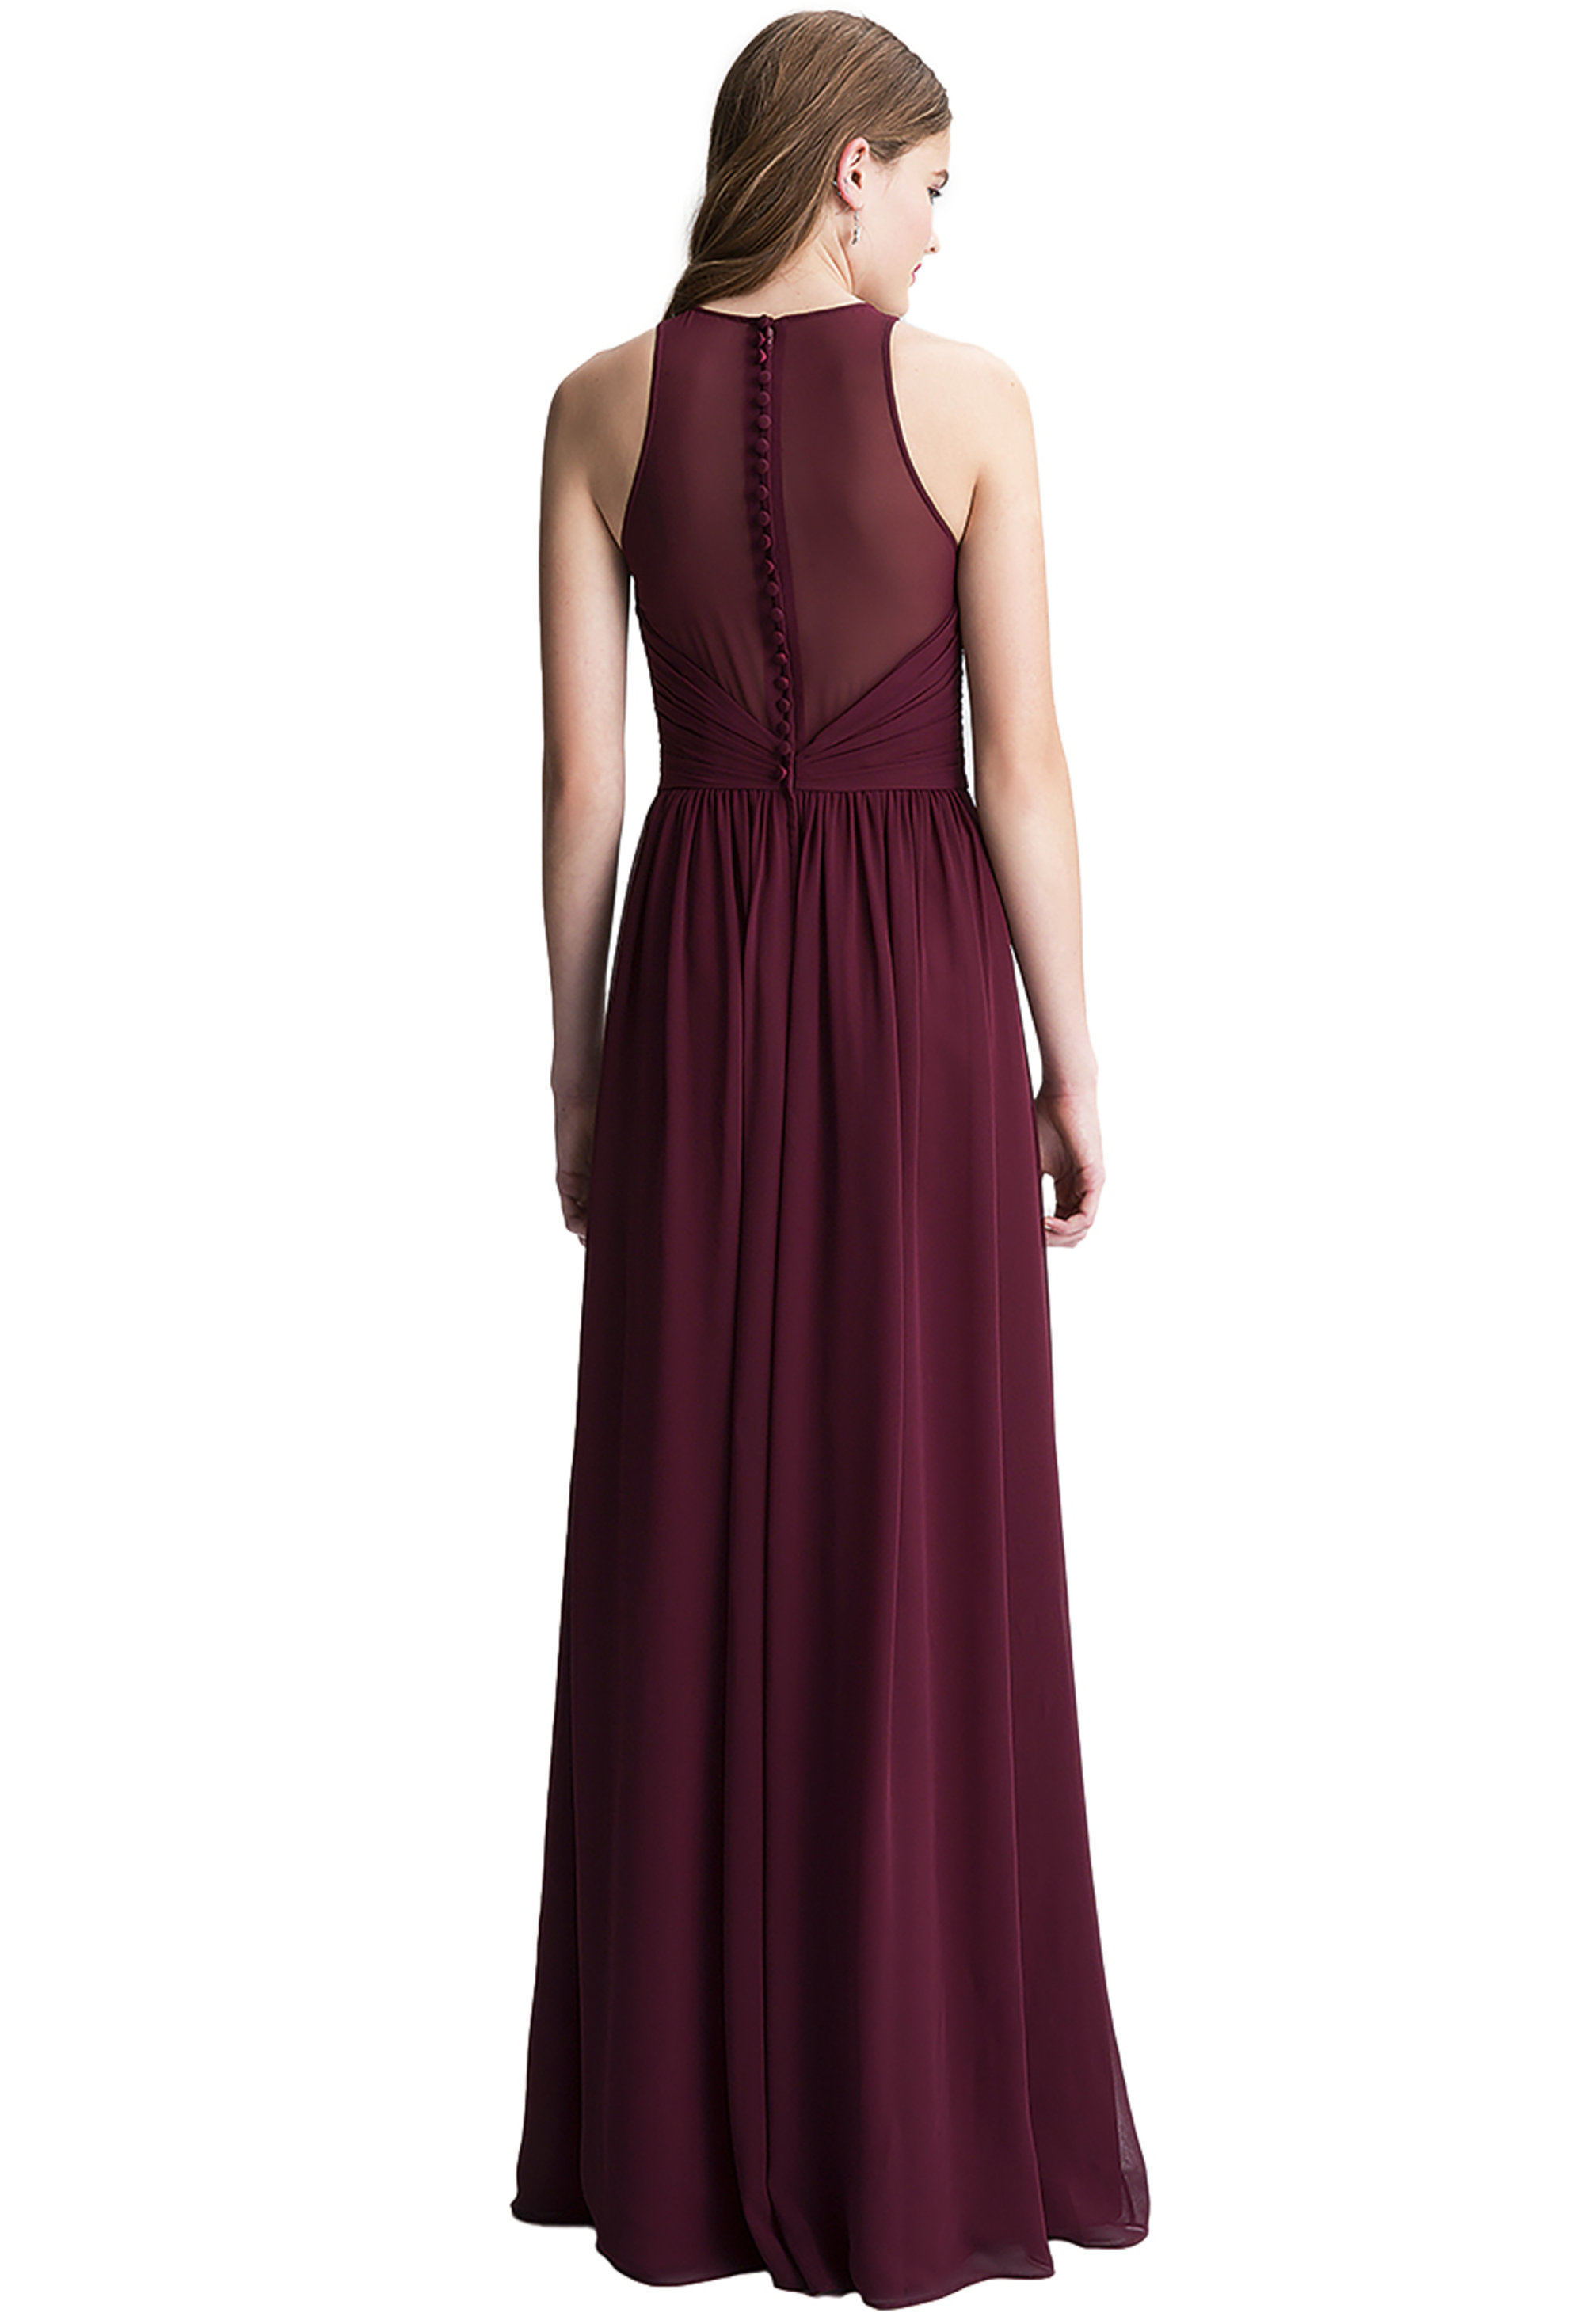 Bill Levkoff BLACK Chiffon Surplice A-line gown, $220.00 Back